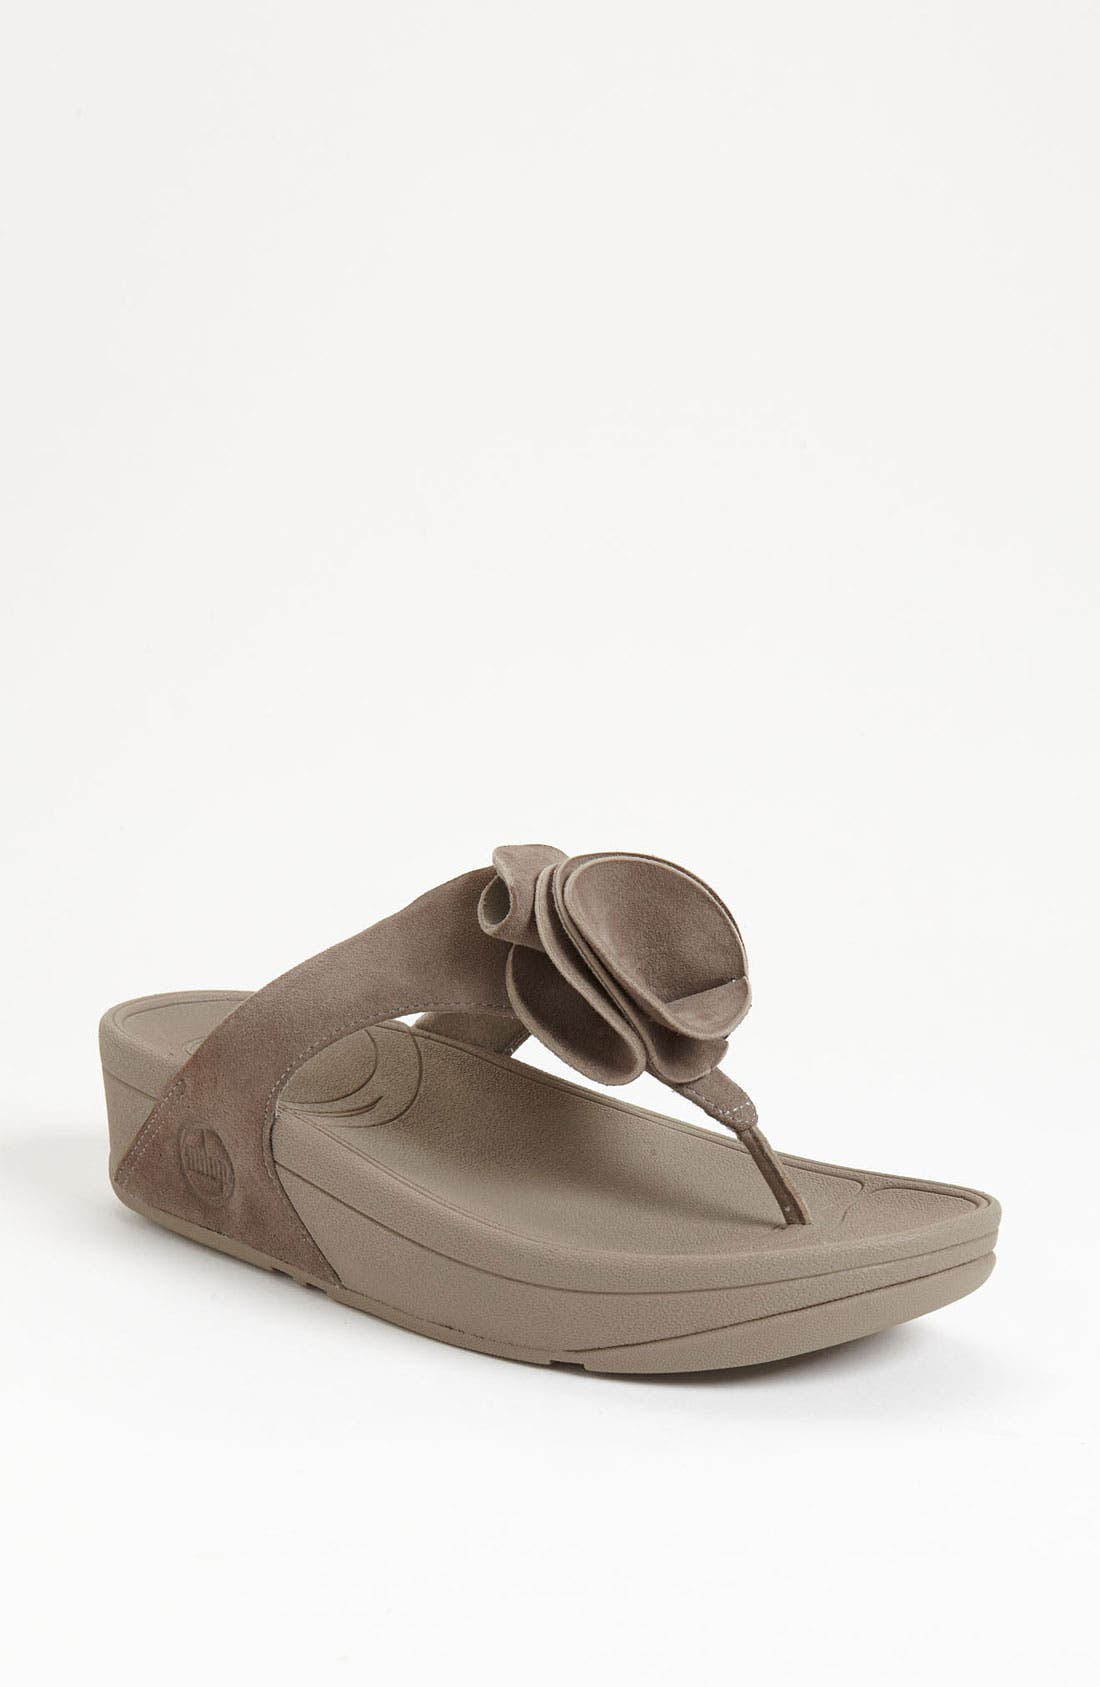 Main Image - FitFlop Sandal